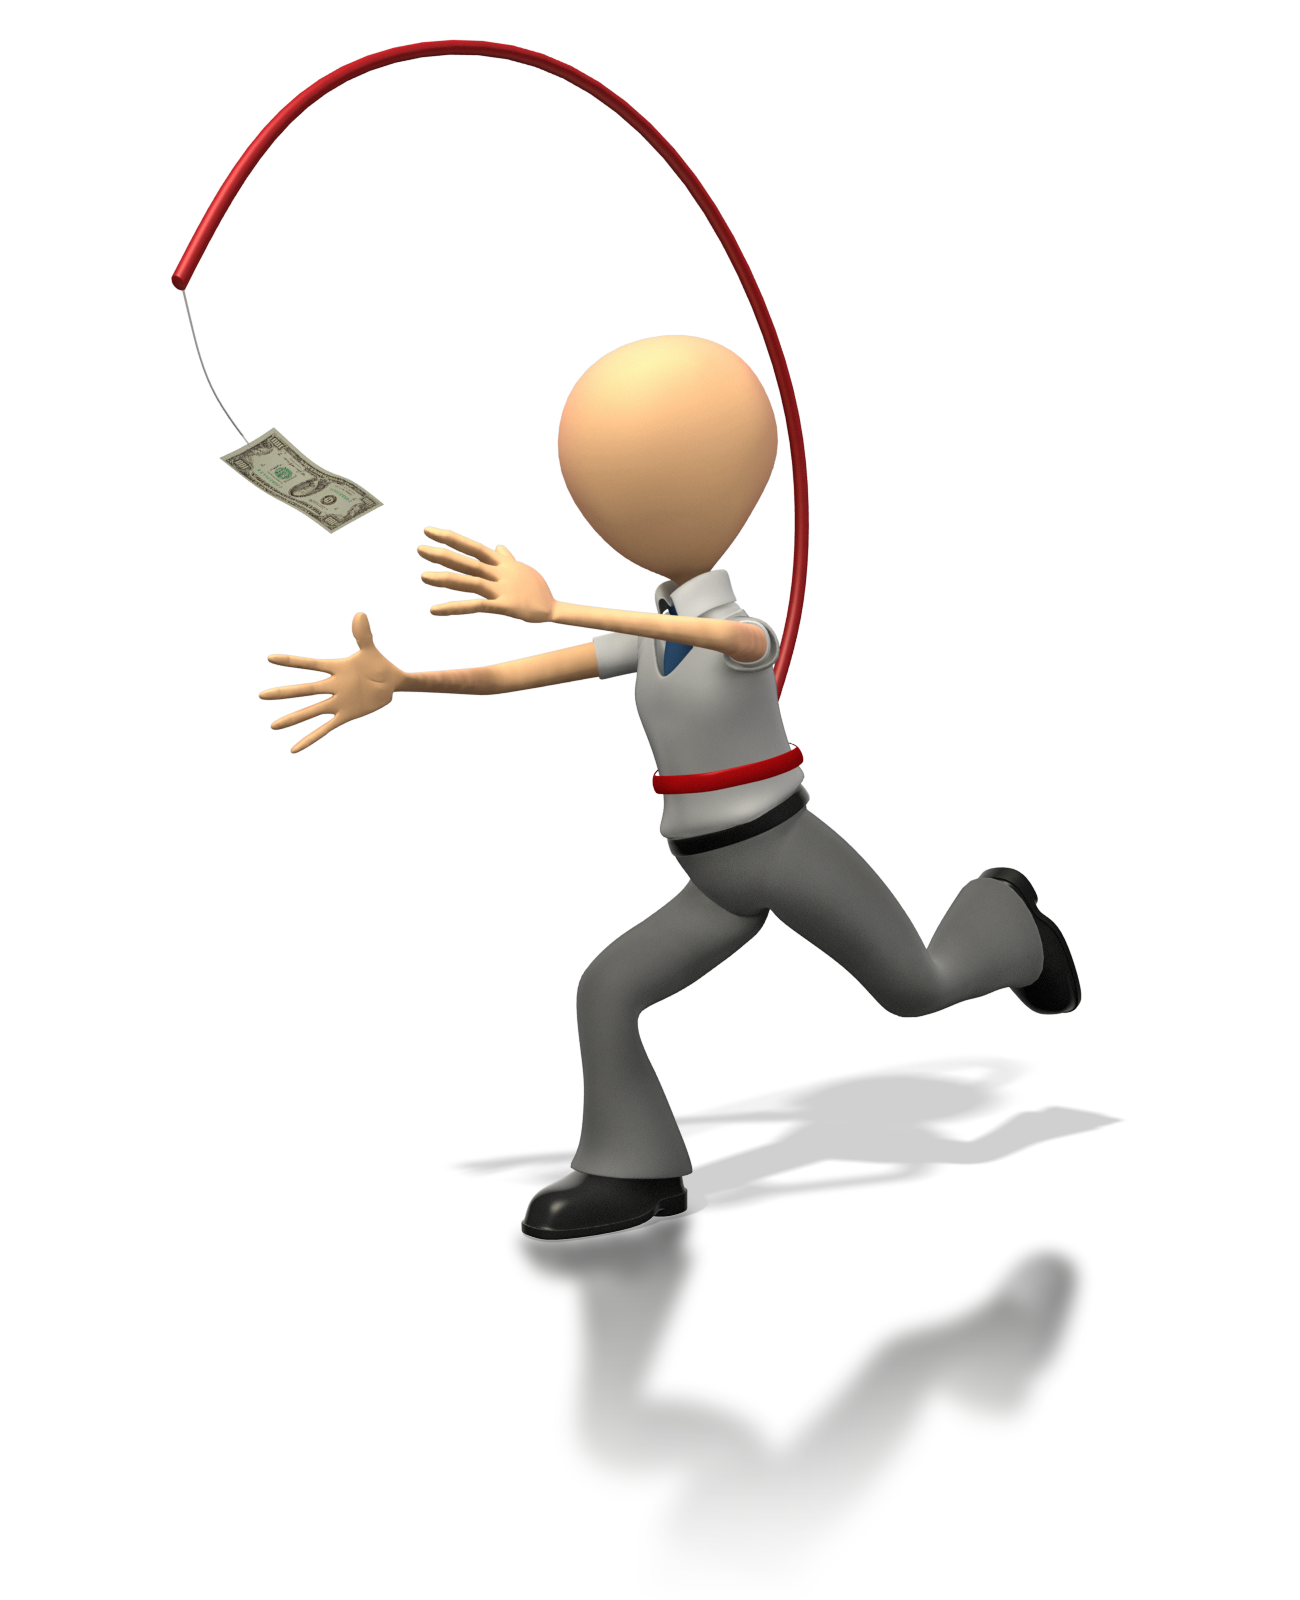 Money and personnel clipart business image stock Mentor Blog - Motivation in a 21st Century Business World - Mentor Group image stock